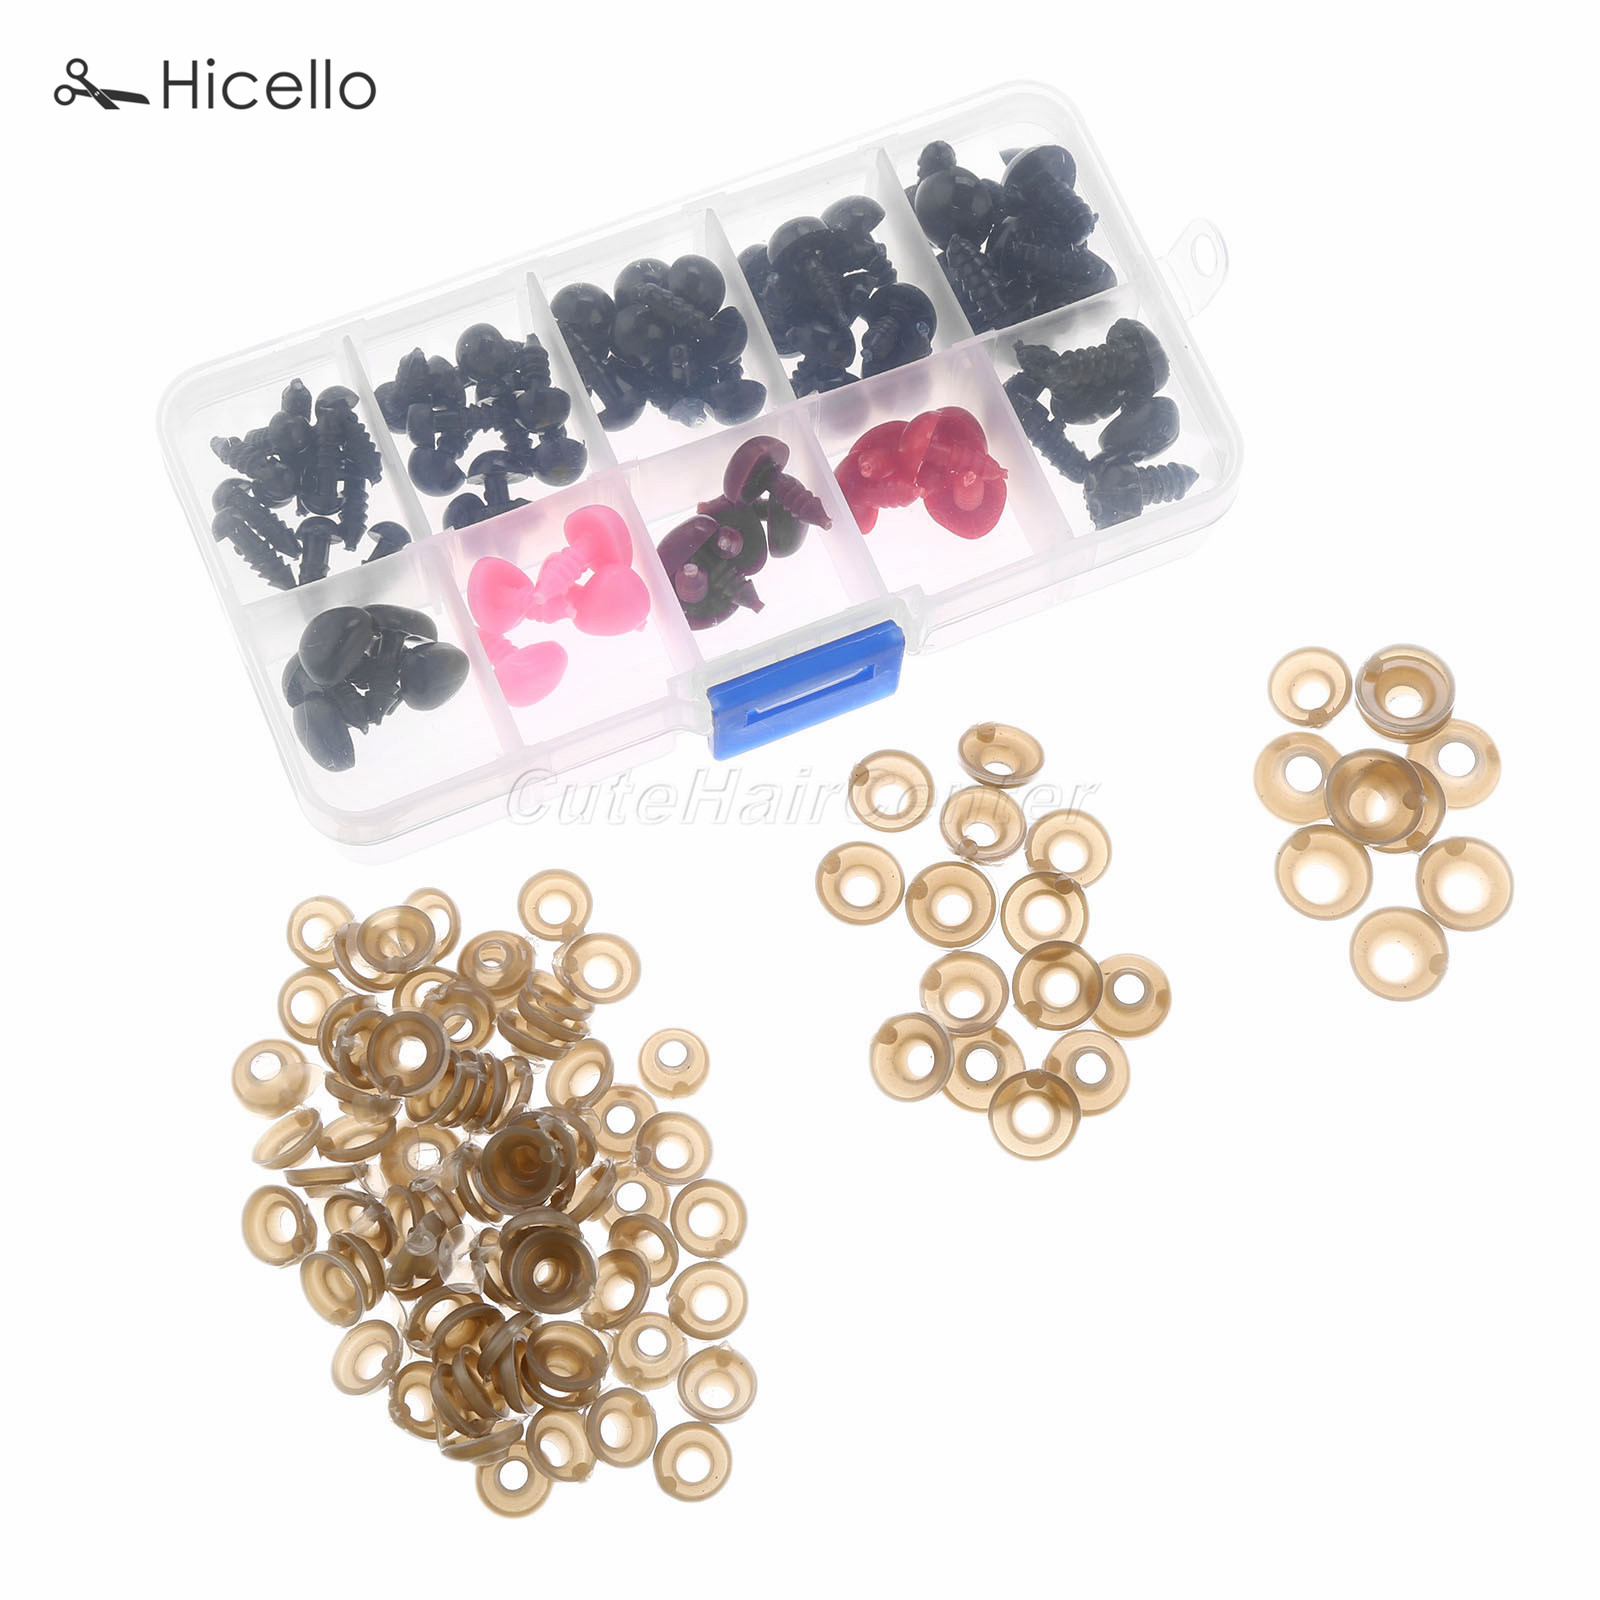 75PCS/box Eyes+Nose 6/8/9/10/12 MM plastic Safety eyes tri-angle nose thread end washer buckle DIY doll toy Sewing sets Hicello